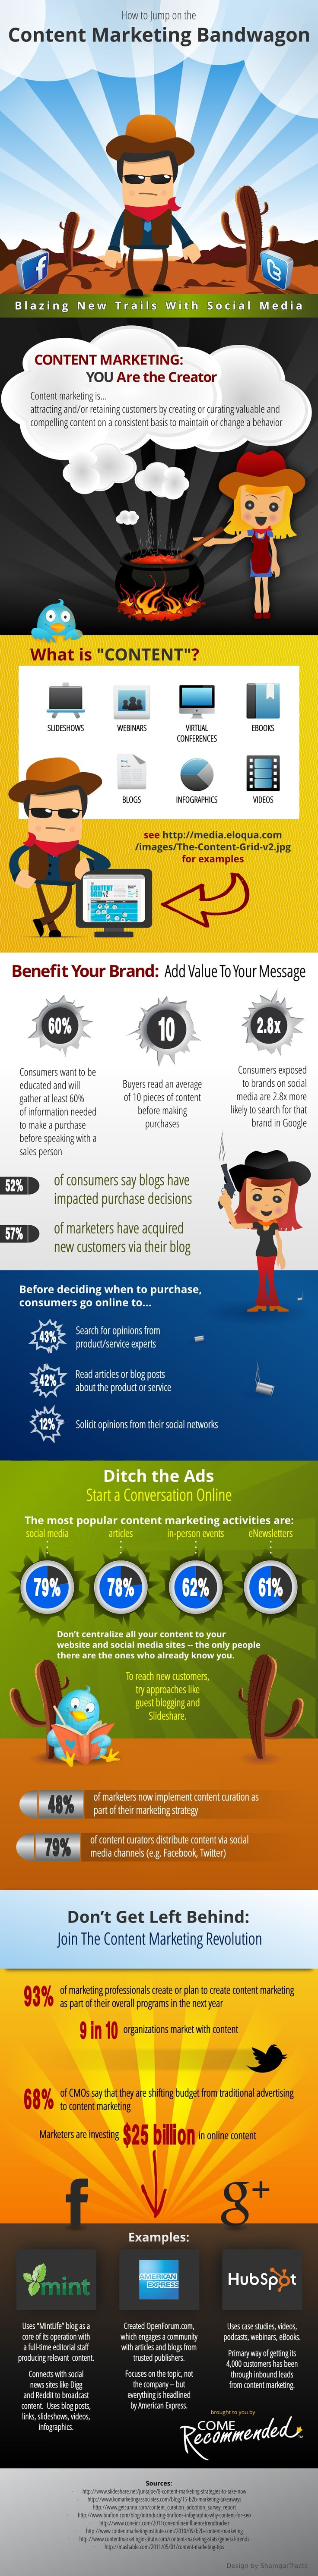 How to Jump on the Content Marketing Bandwagon